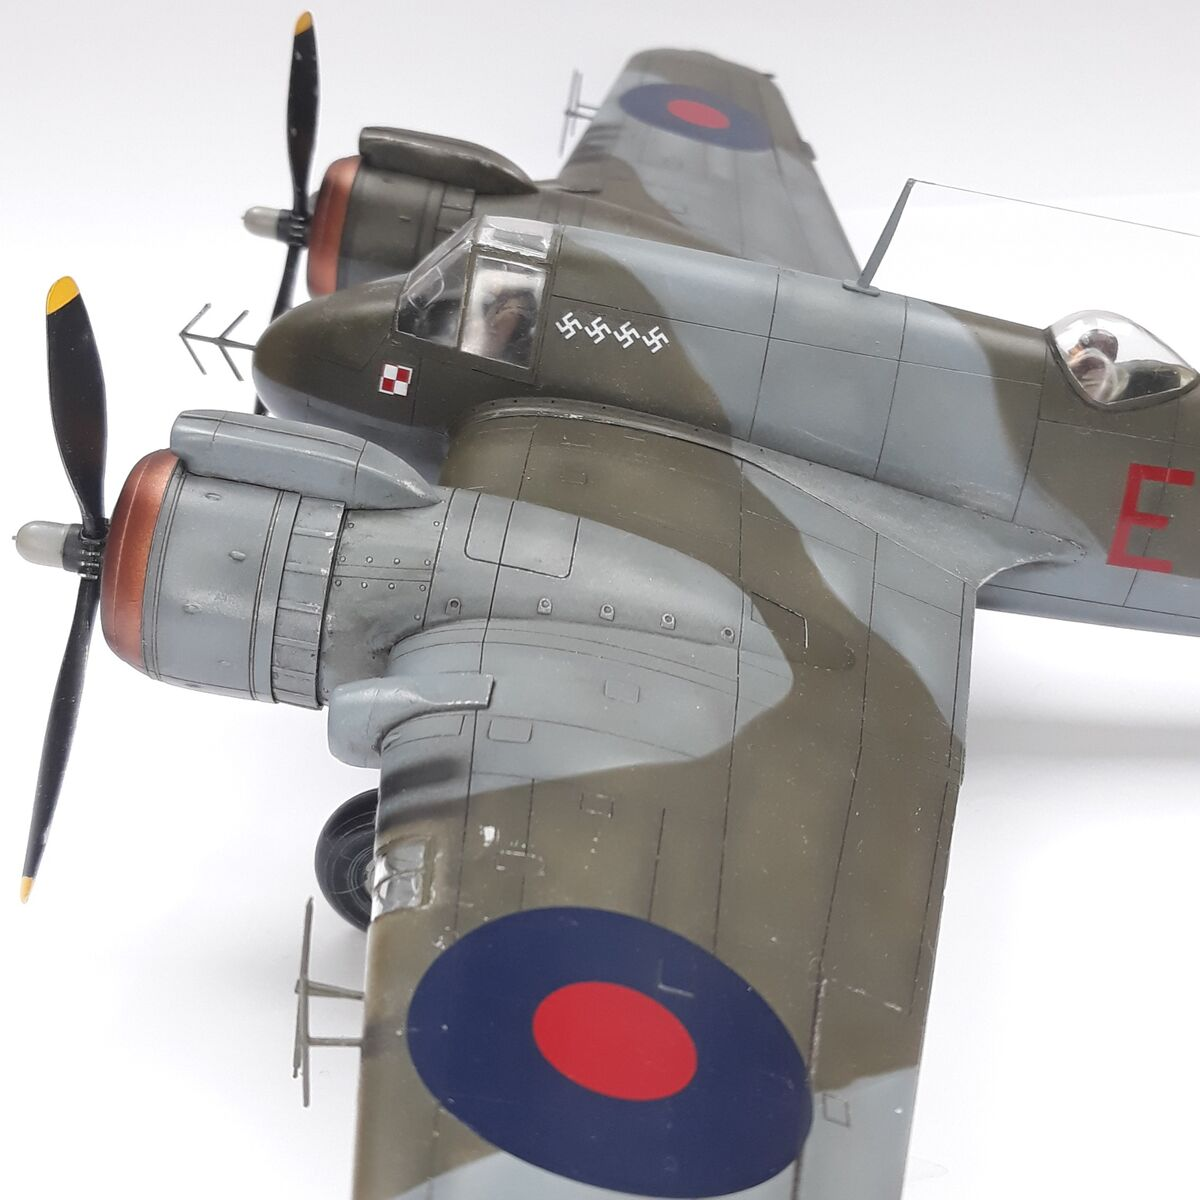 Beaufighter Mk.VI dyw.307 - 005 - Image 1